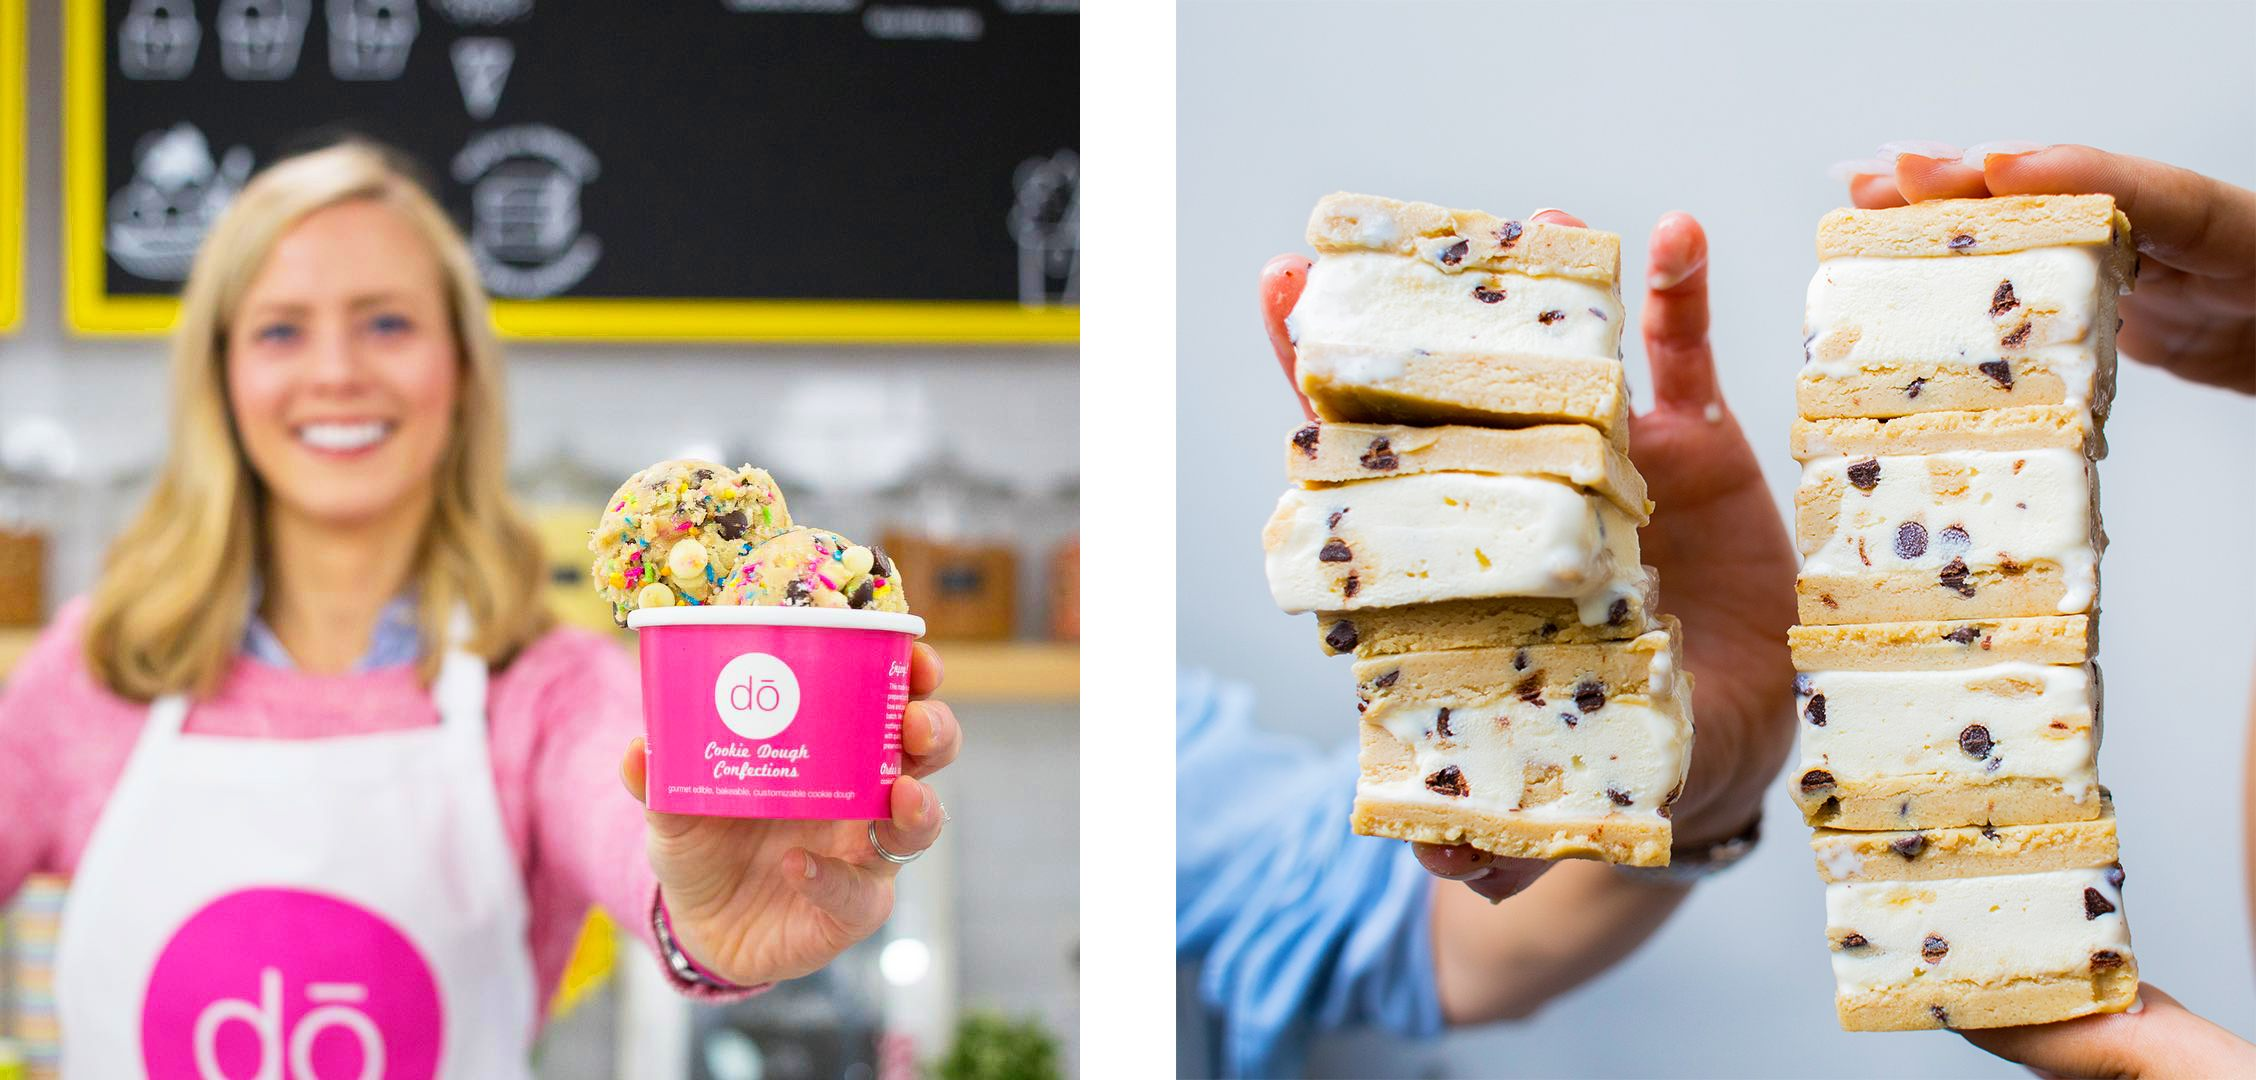 DŌ, Cookie Dough Confections will be featured at the second annual ice cream we love festival held at bal harbour shops